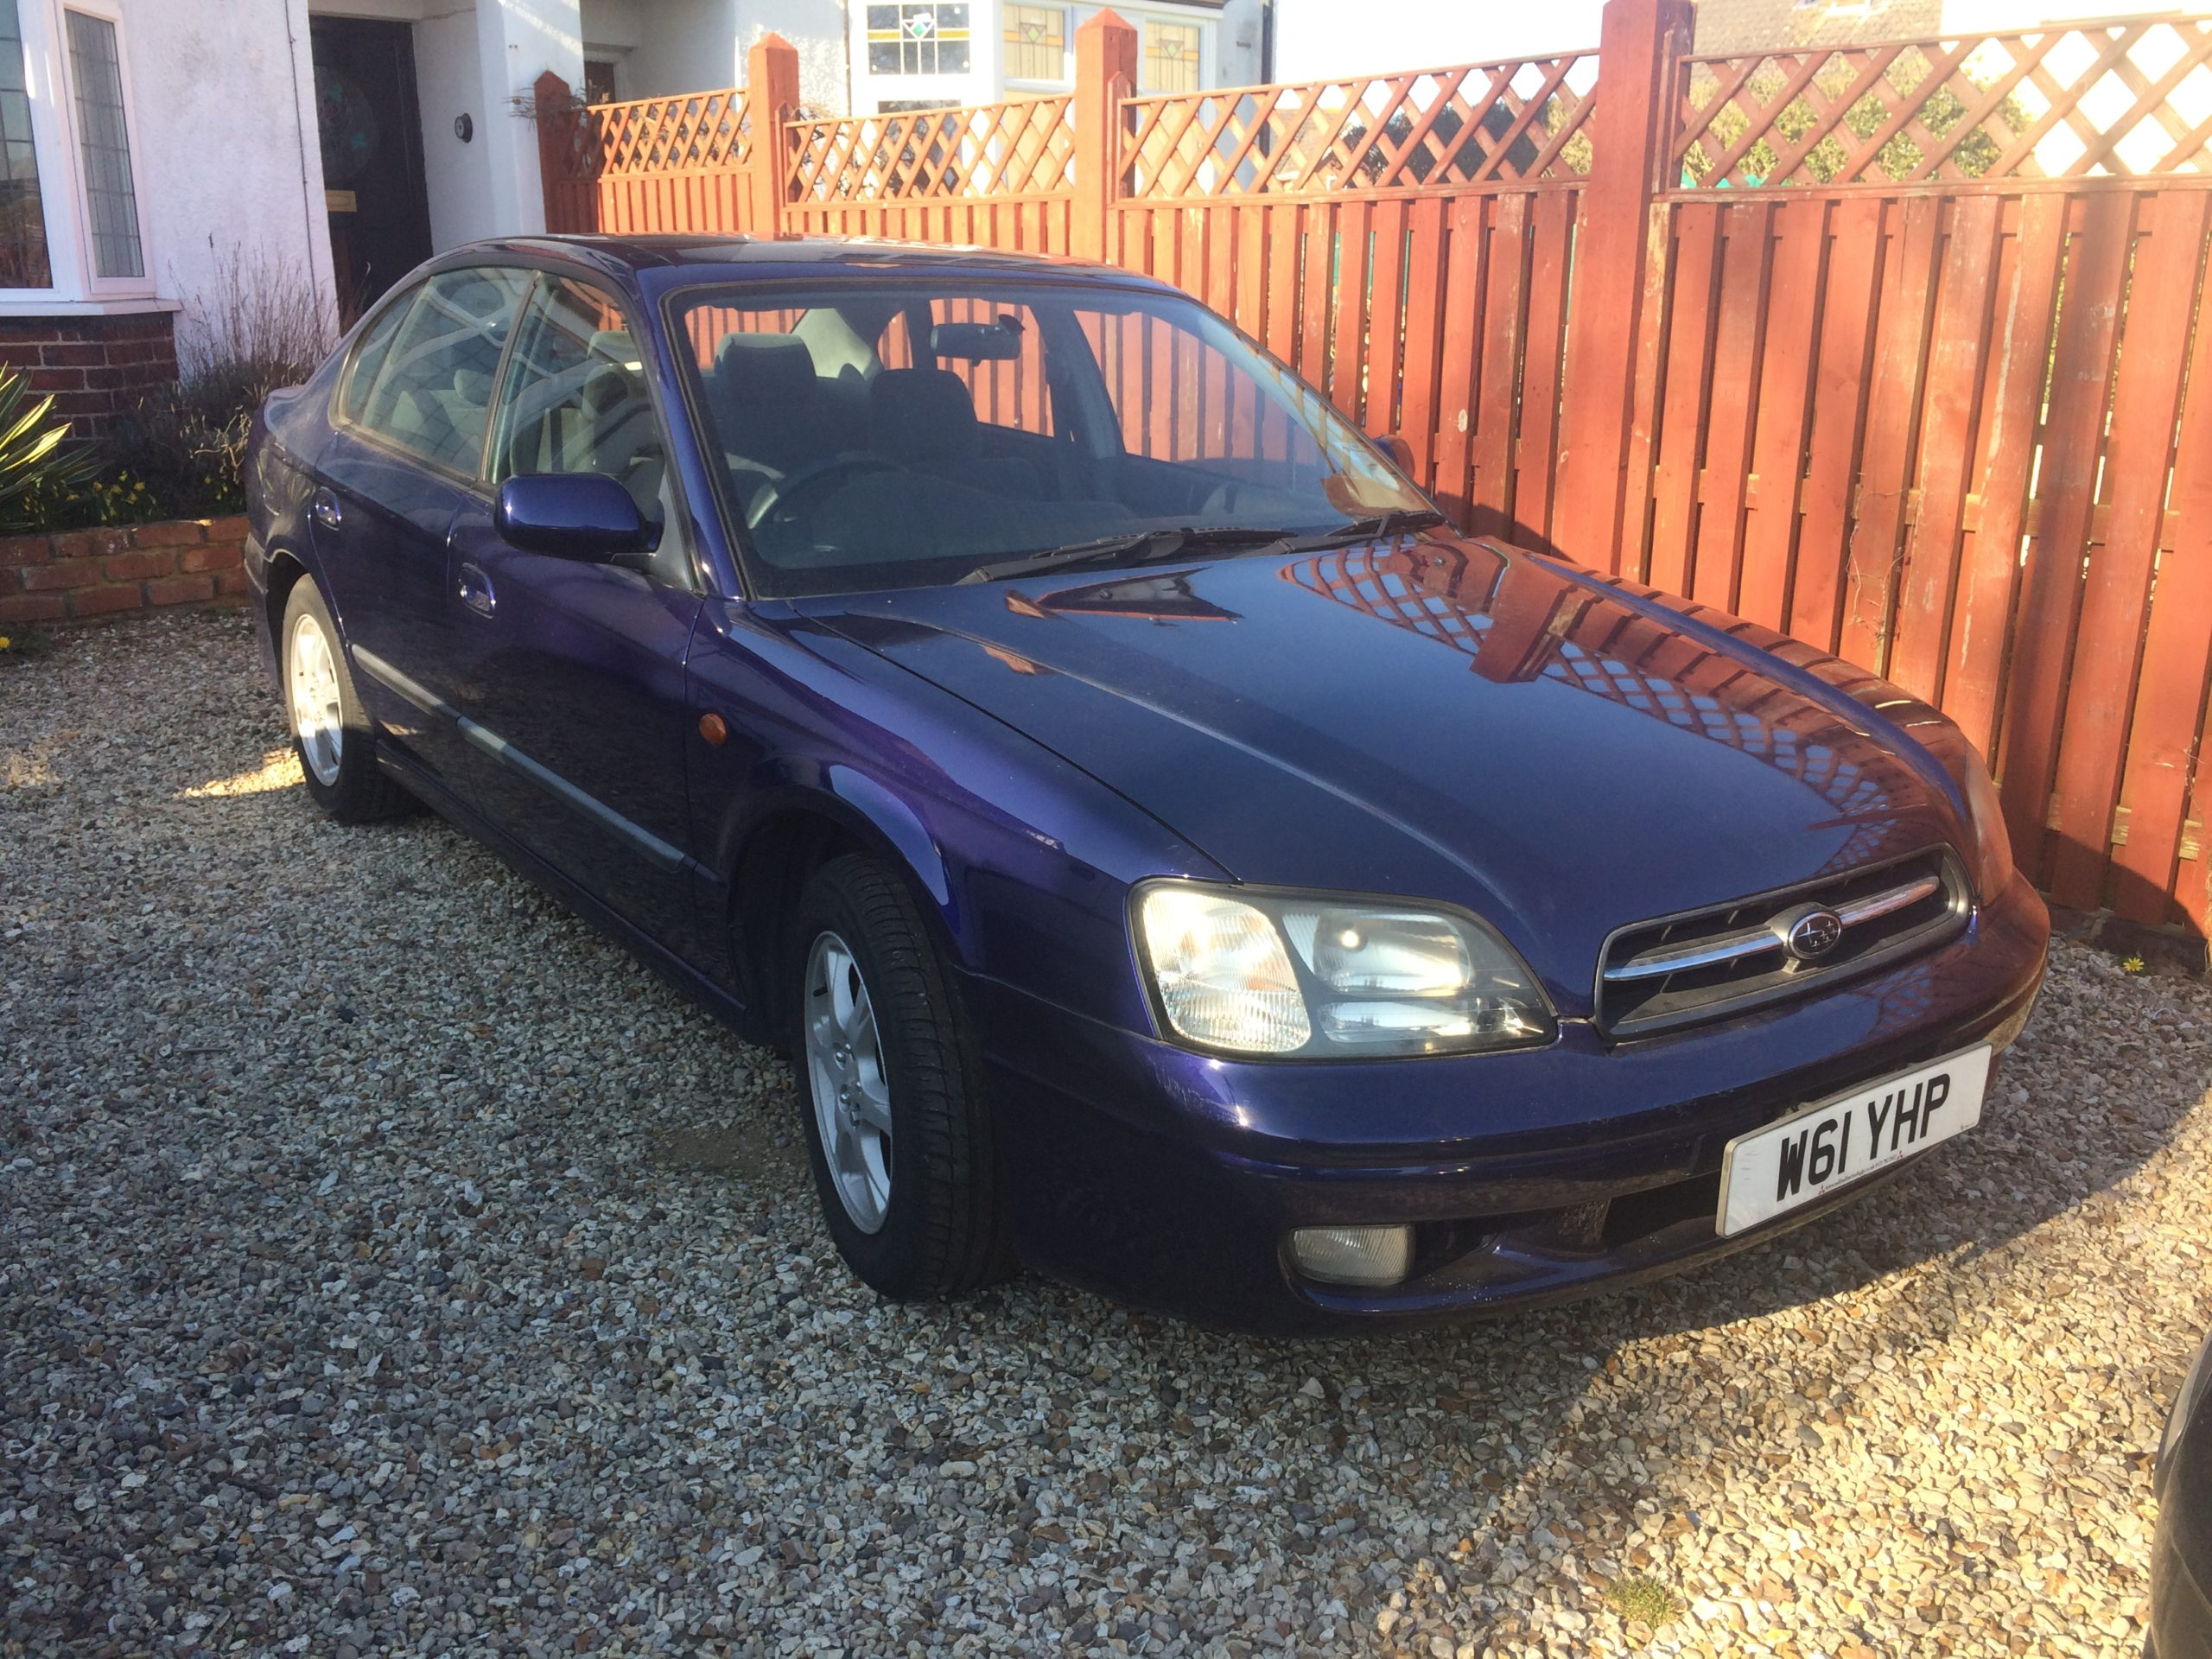 Car Chronicles: The £35 Subaru Legacy